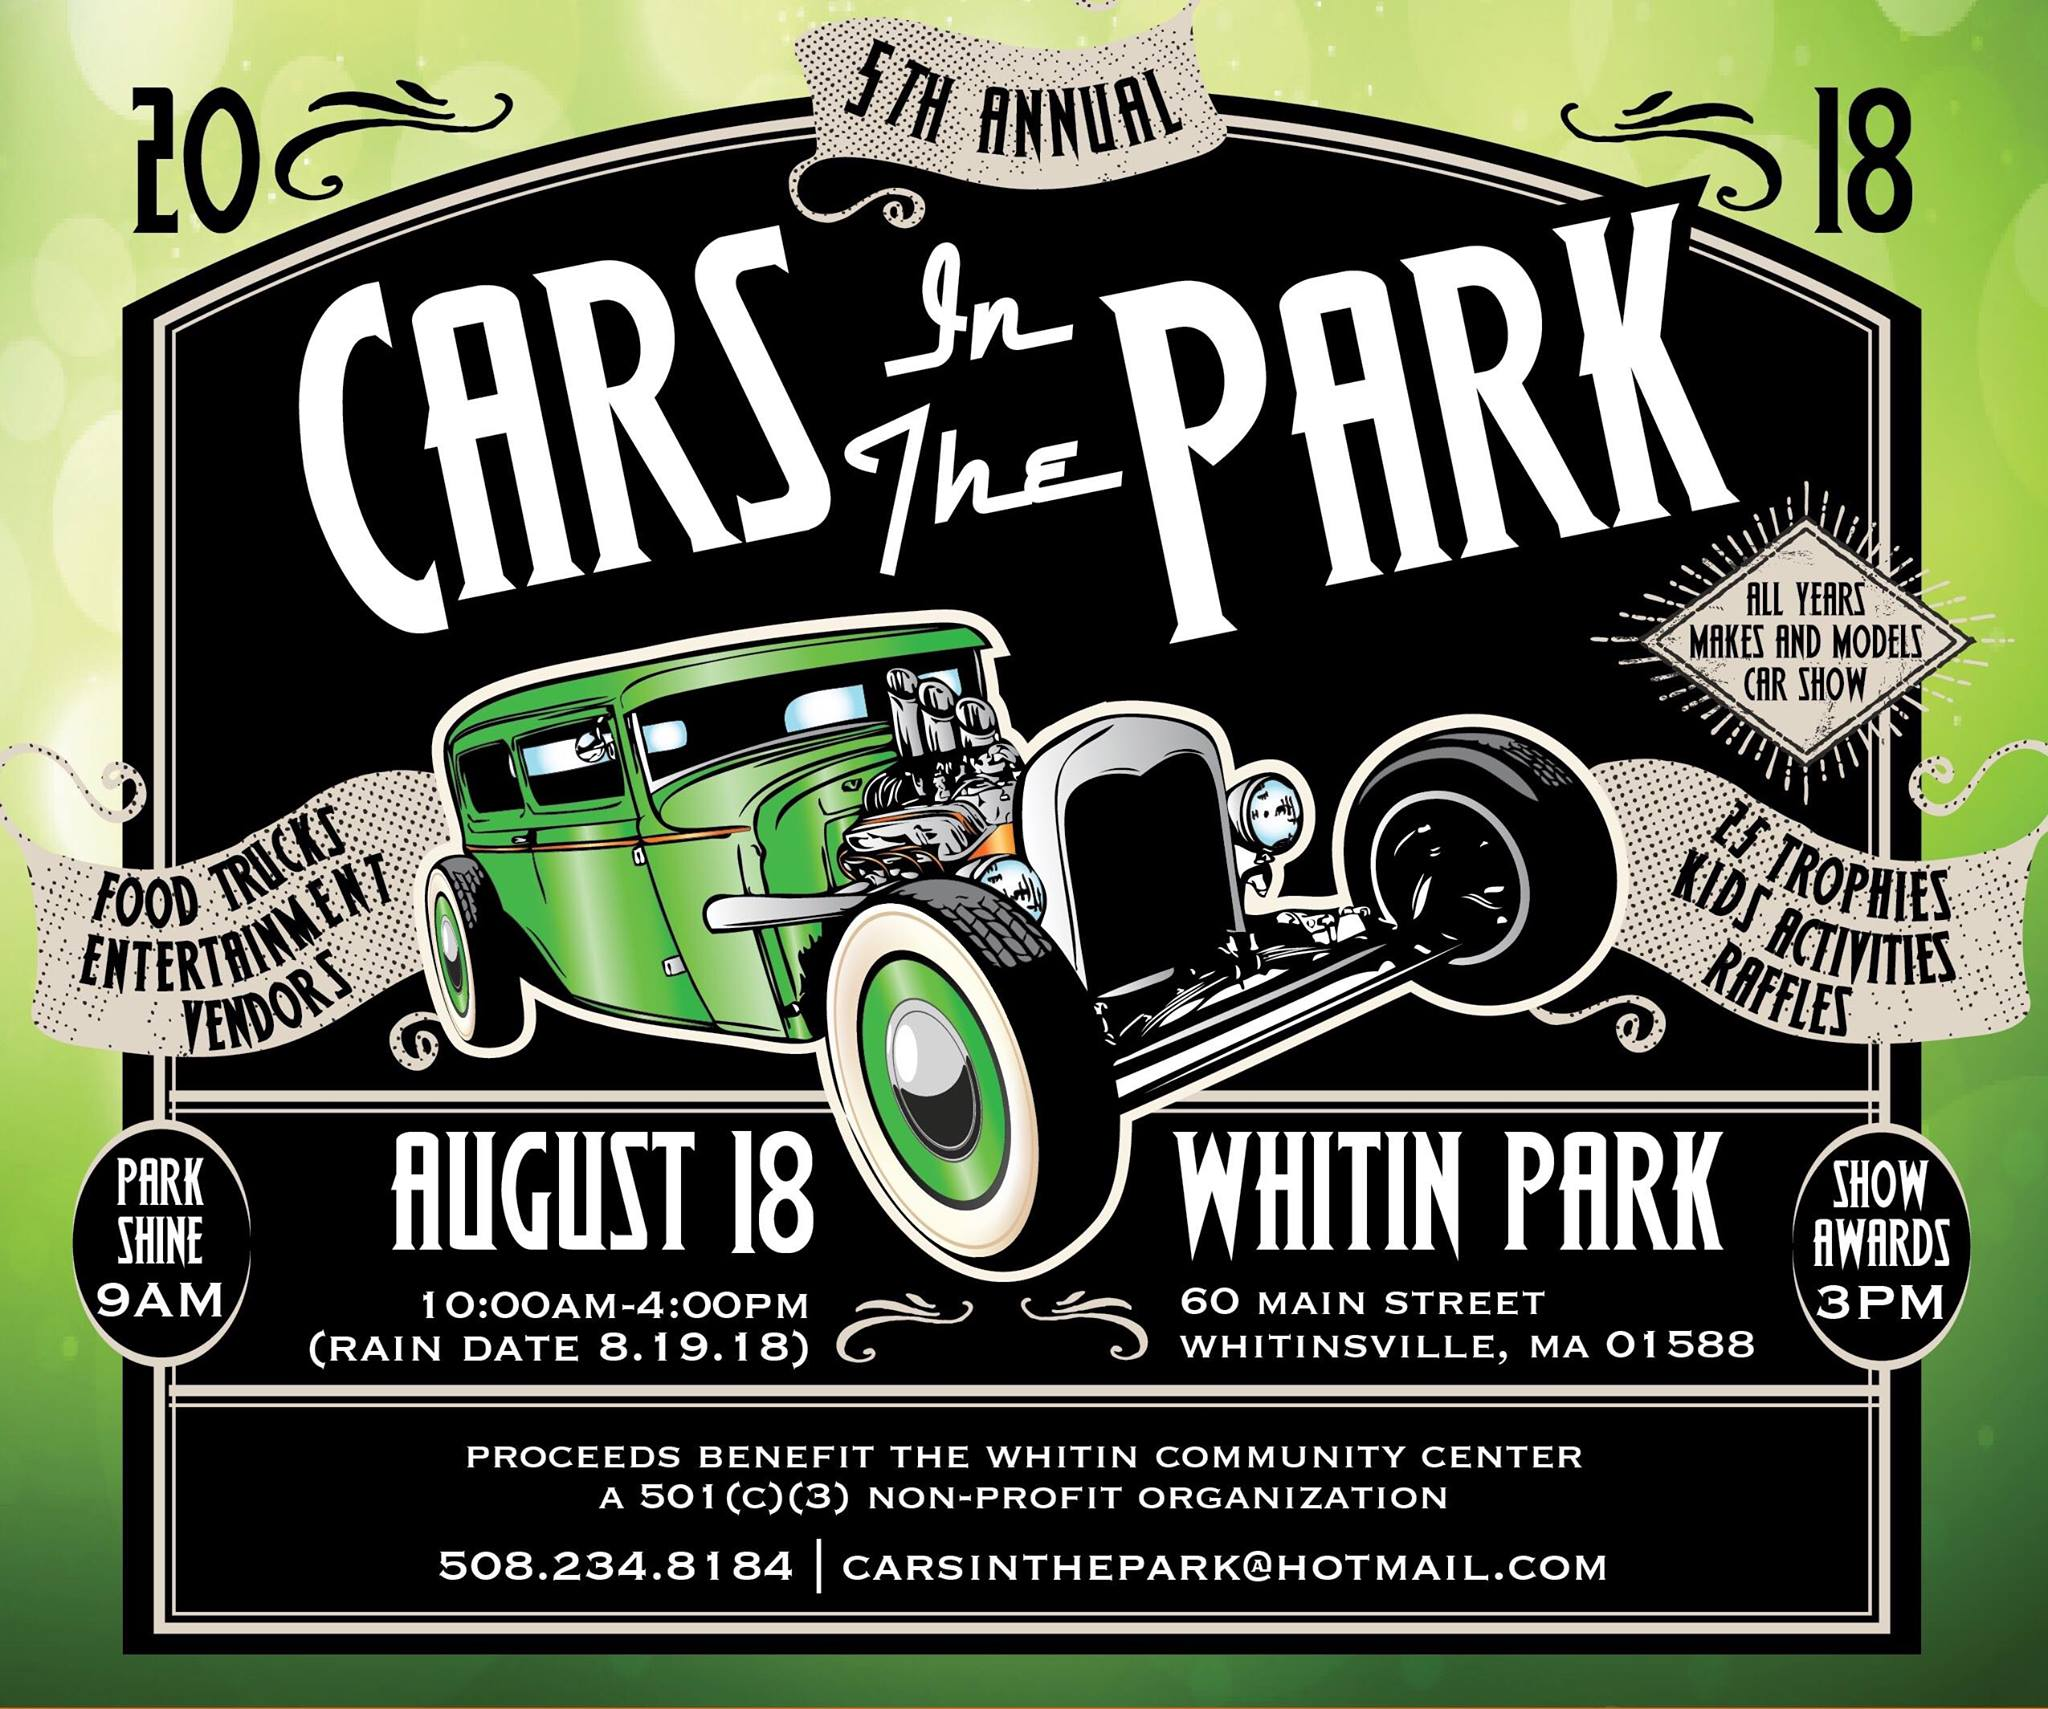 Cars In The Park Whitinsville MA - Millville car show 2018